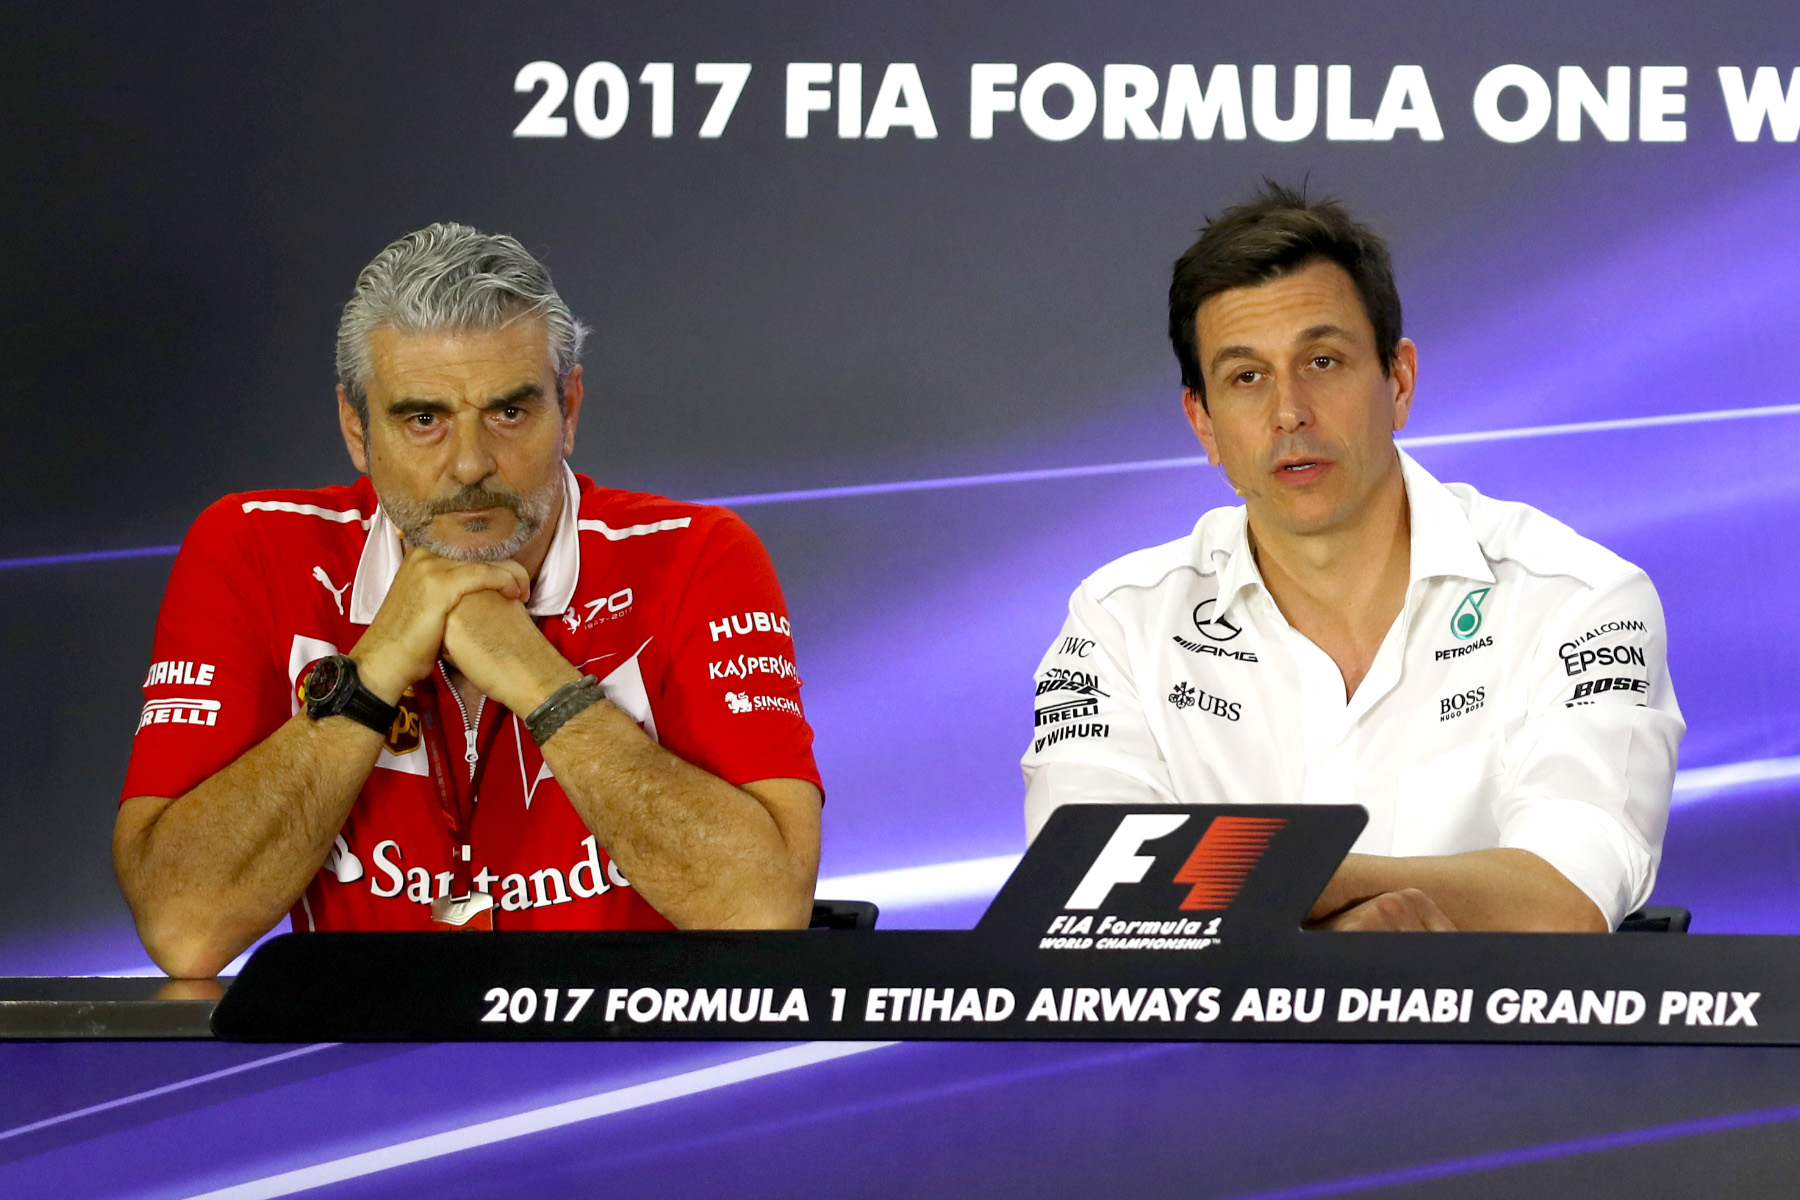 Maurizio Arrivabene (Ferrari) and Toto Wolff (Mercedes) in the Friday press conference at the 2017 Abu Dhabi Grand Prix.